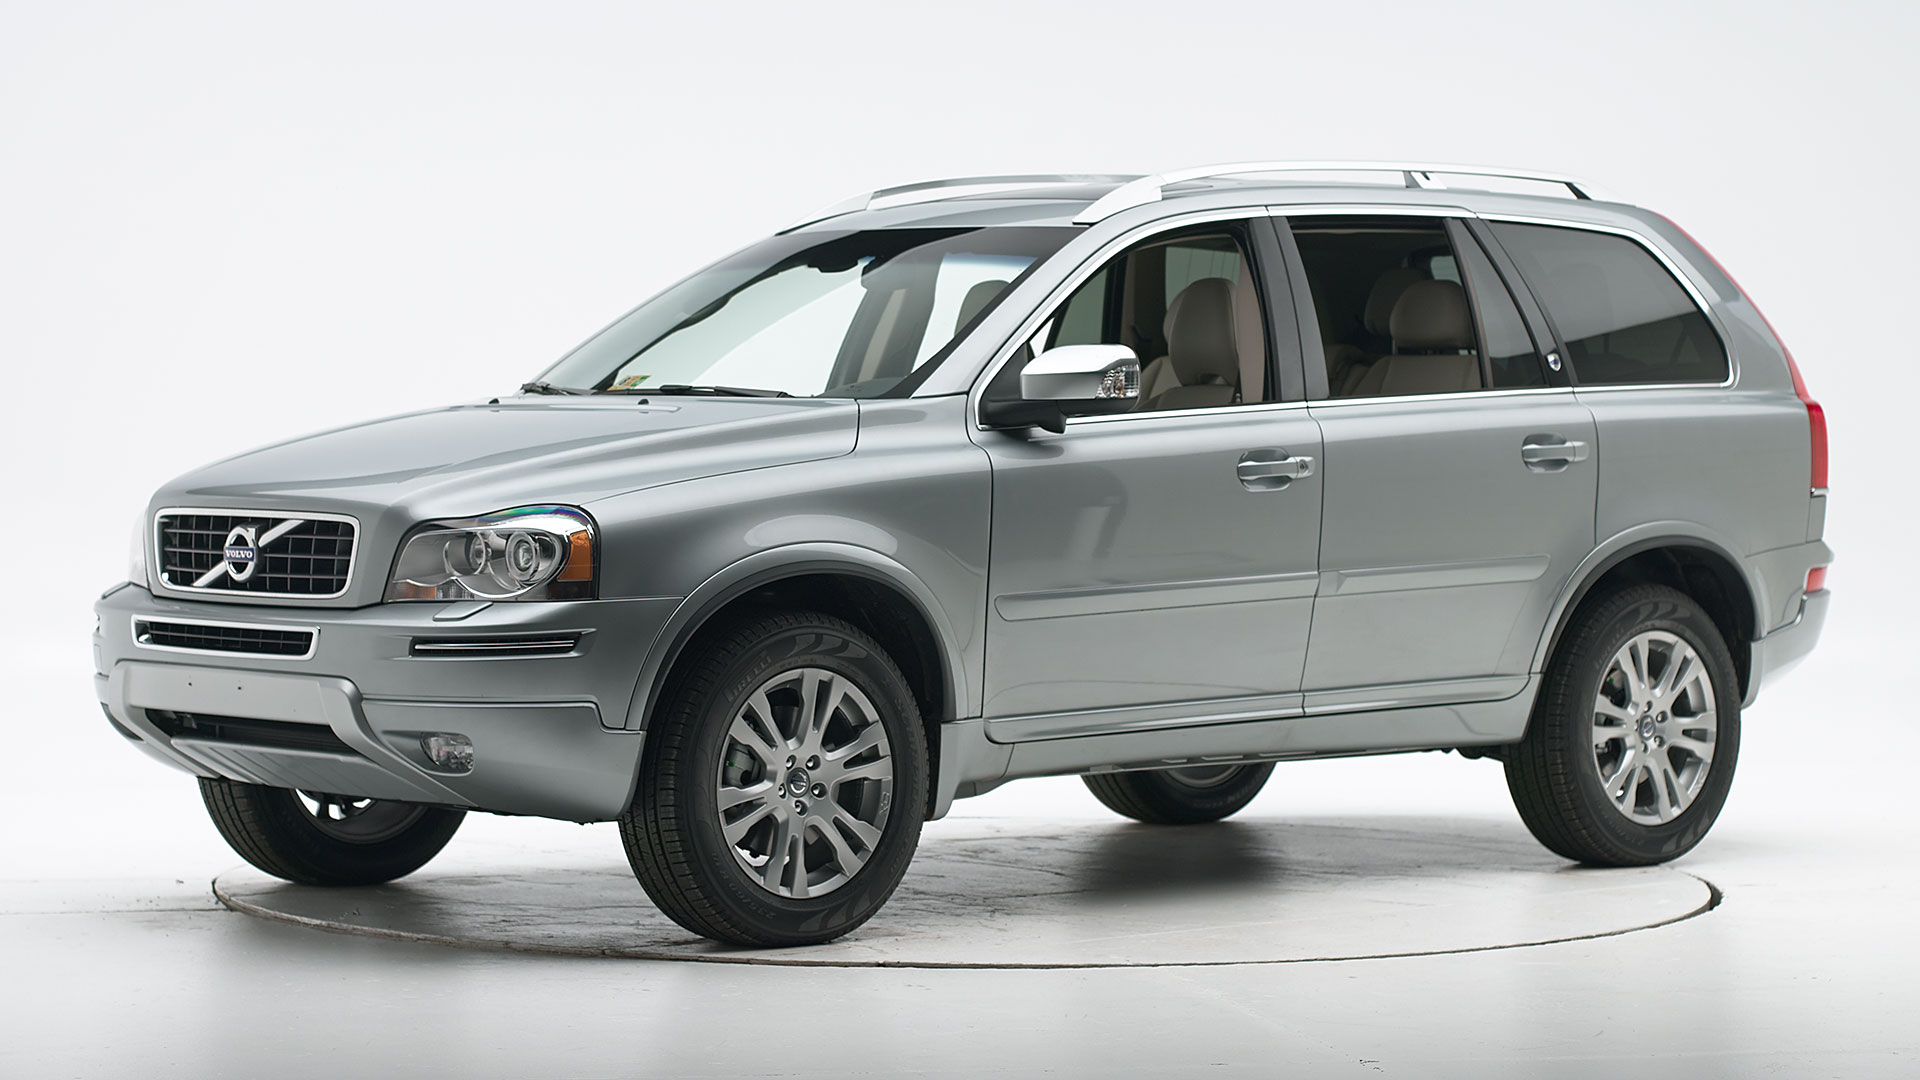 2014 Volvo XC90 4-door SUV